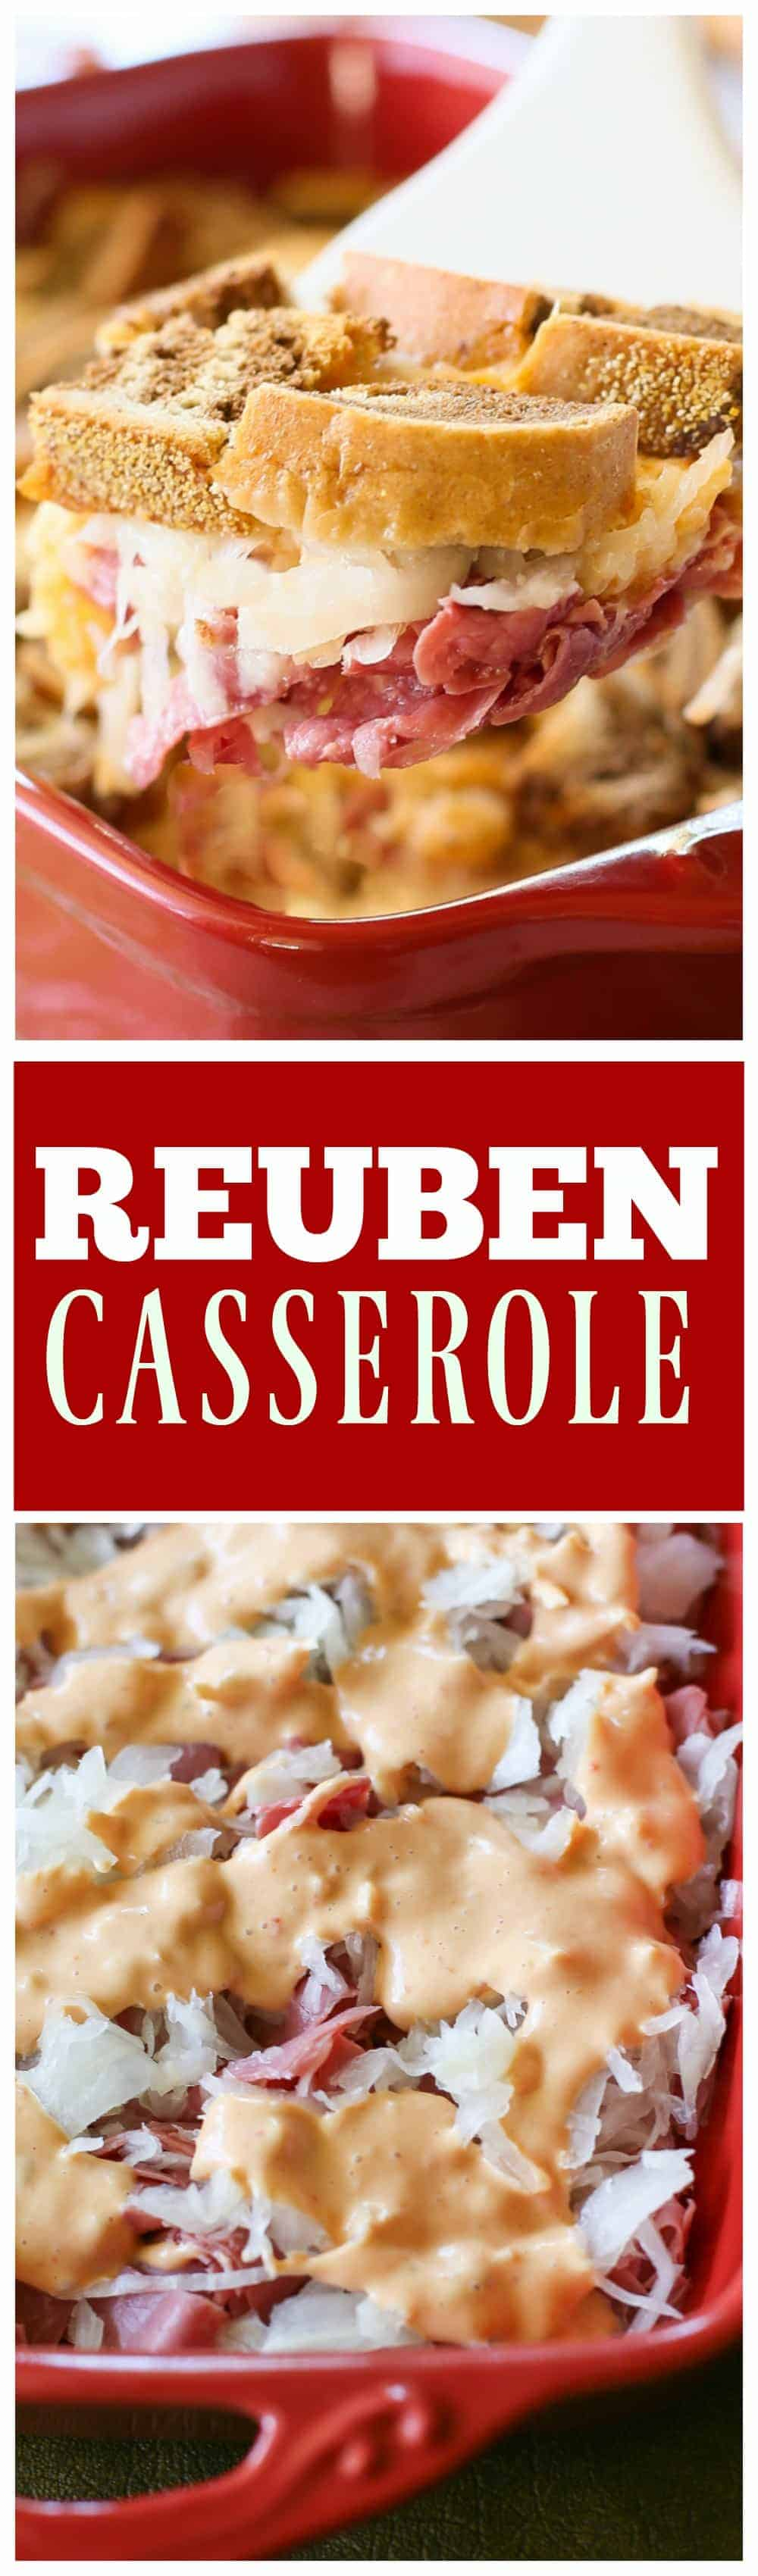 Corned beef, sauerkraut, Swiss cheese, Thousand Island dressing and Rye bread all make this Reuben Casserole taste just like the sandwich. #reuben #casserole #stpatricksday the-girl-who-ate-everything.com